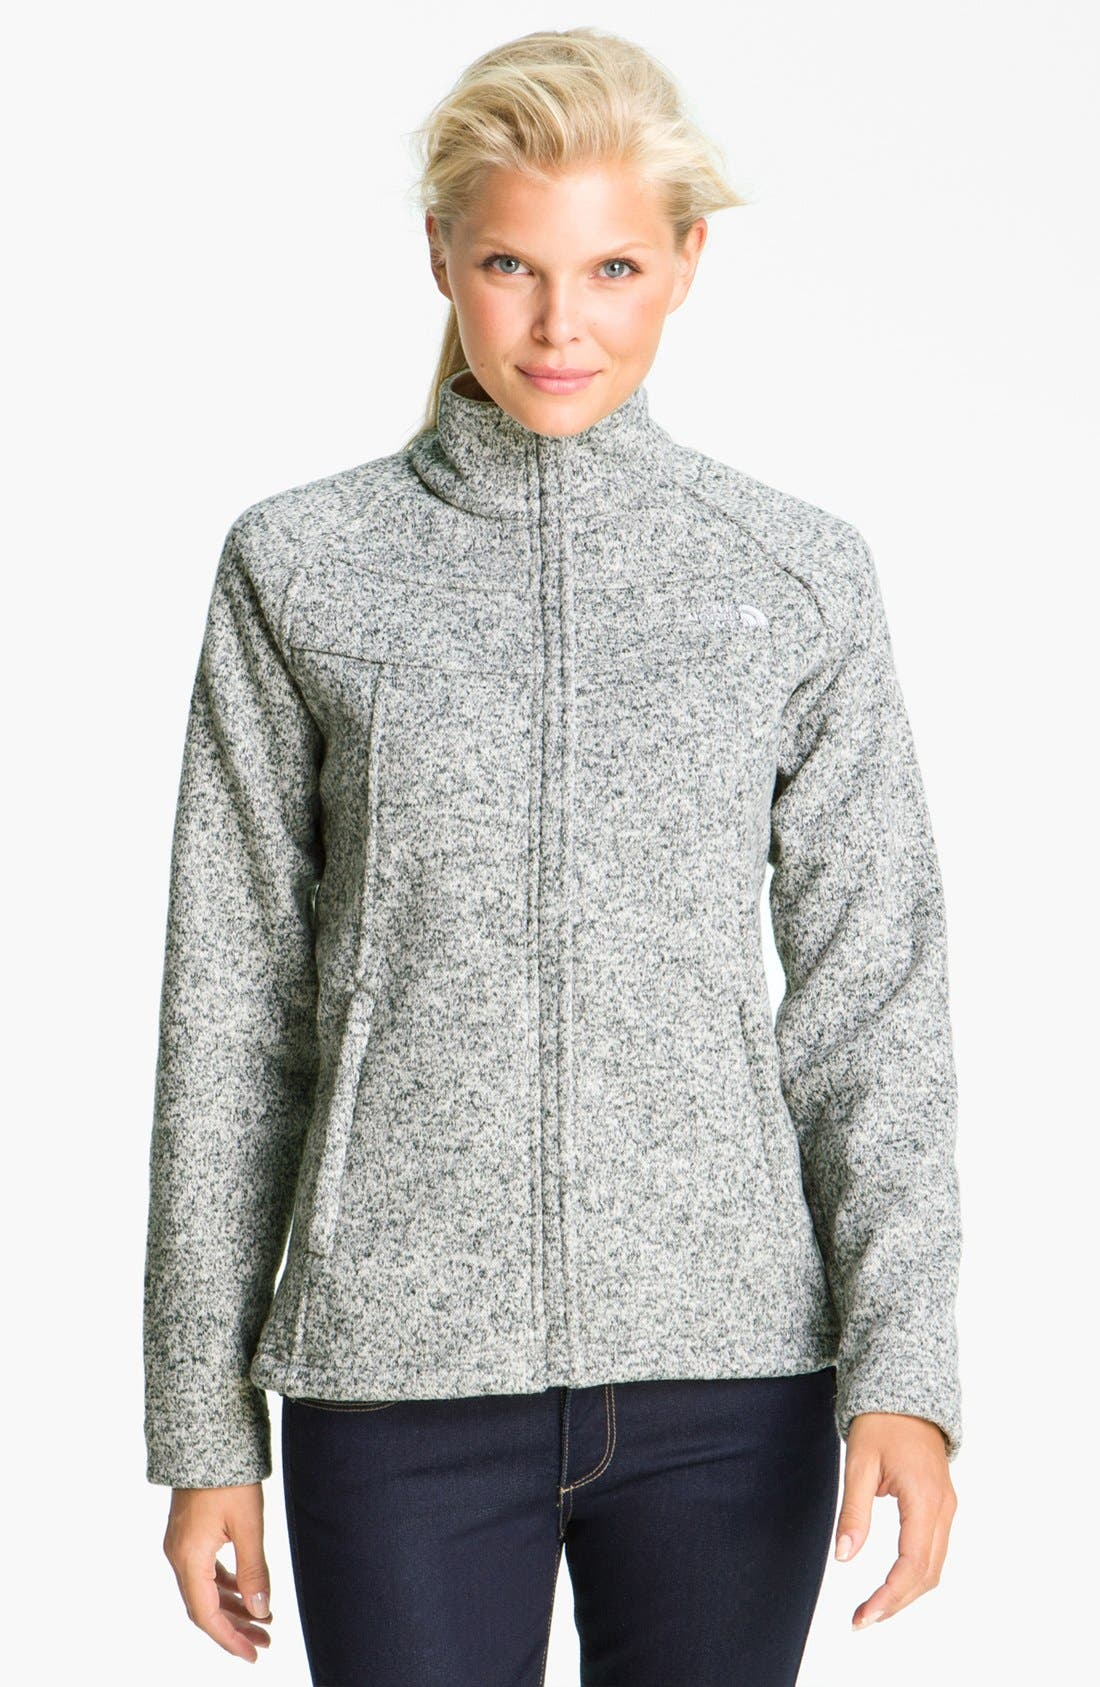 Alternate Image 1 Selected - The North Face 'Indi' Fleece Jacket